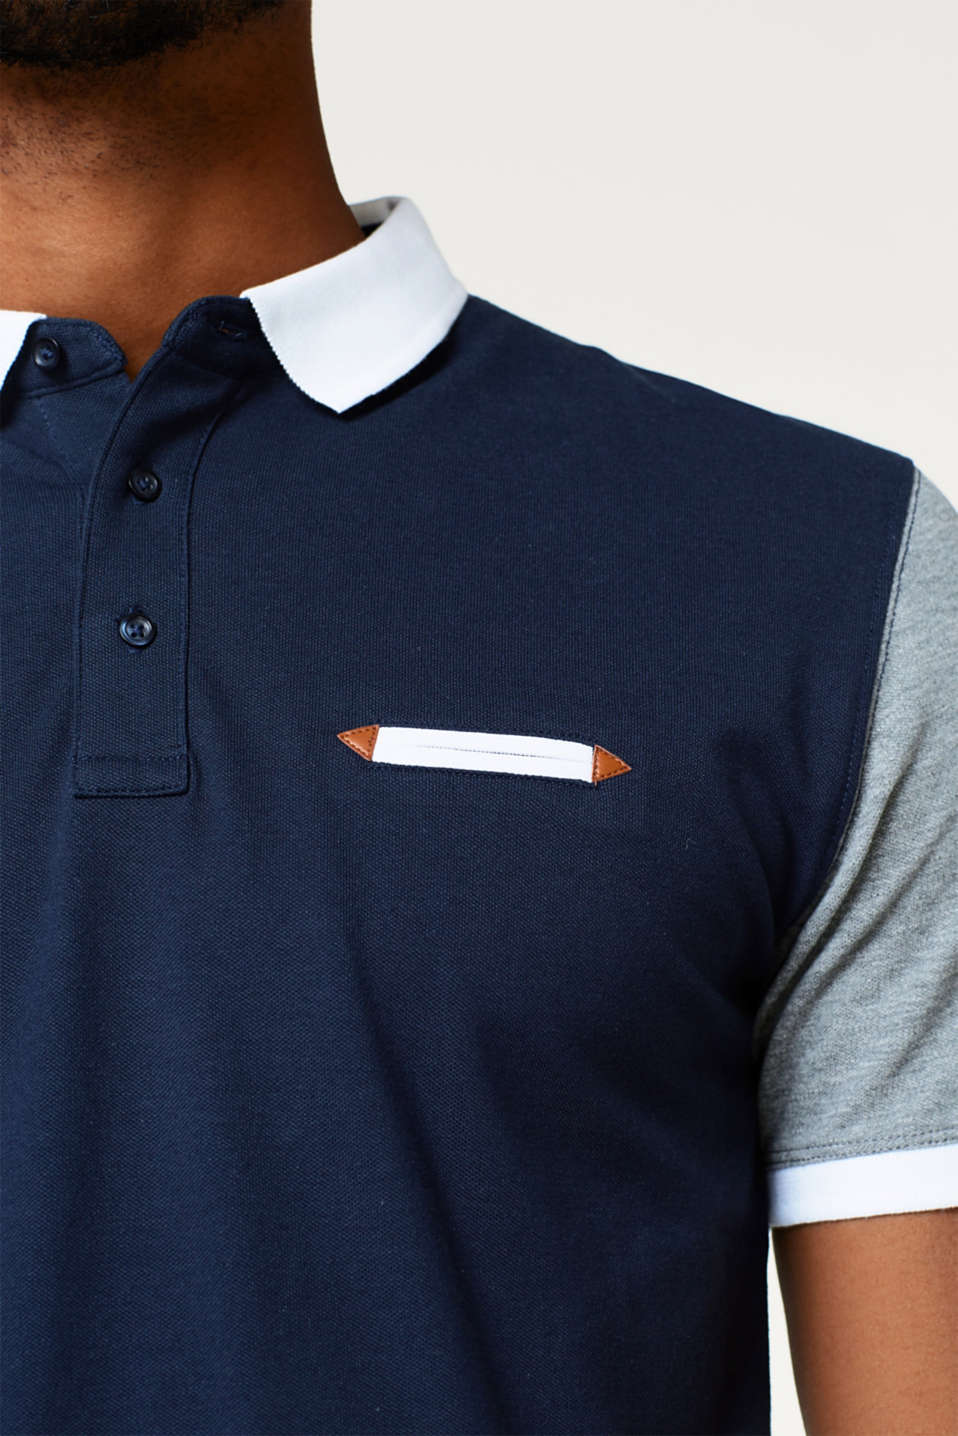 Fitted polo shirt in a multi-coloured look